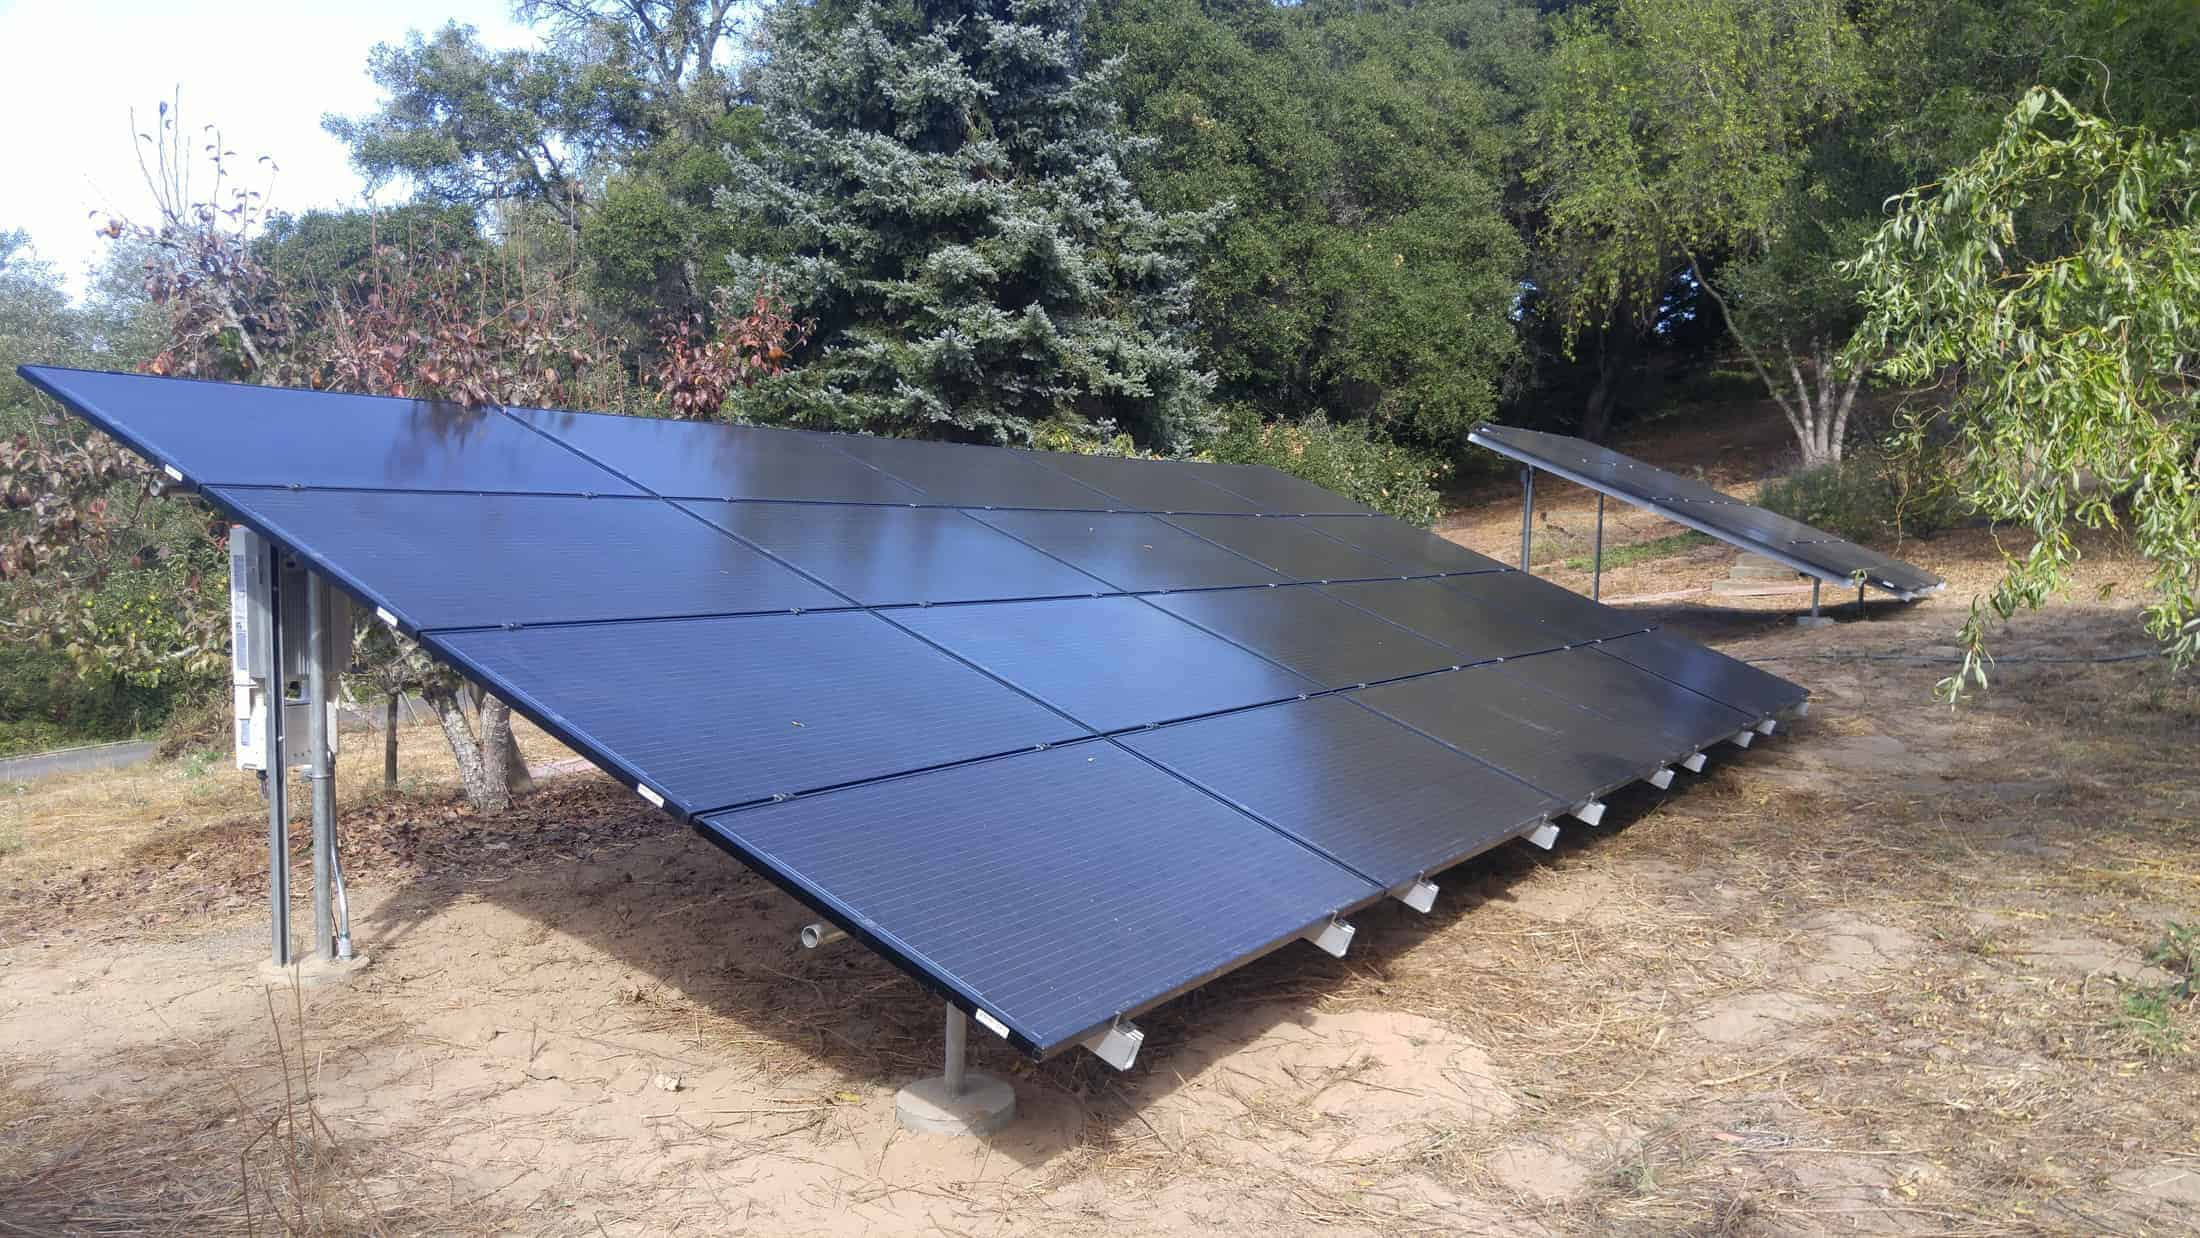 Another ground mount solar installation by Michael & Sun Solar.